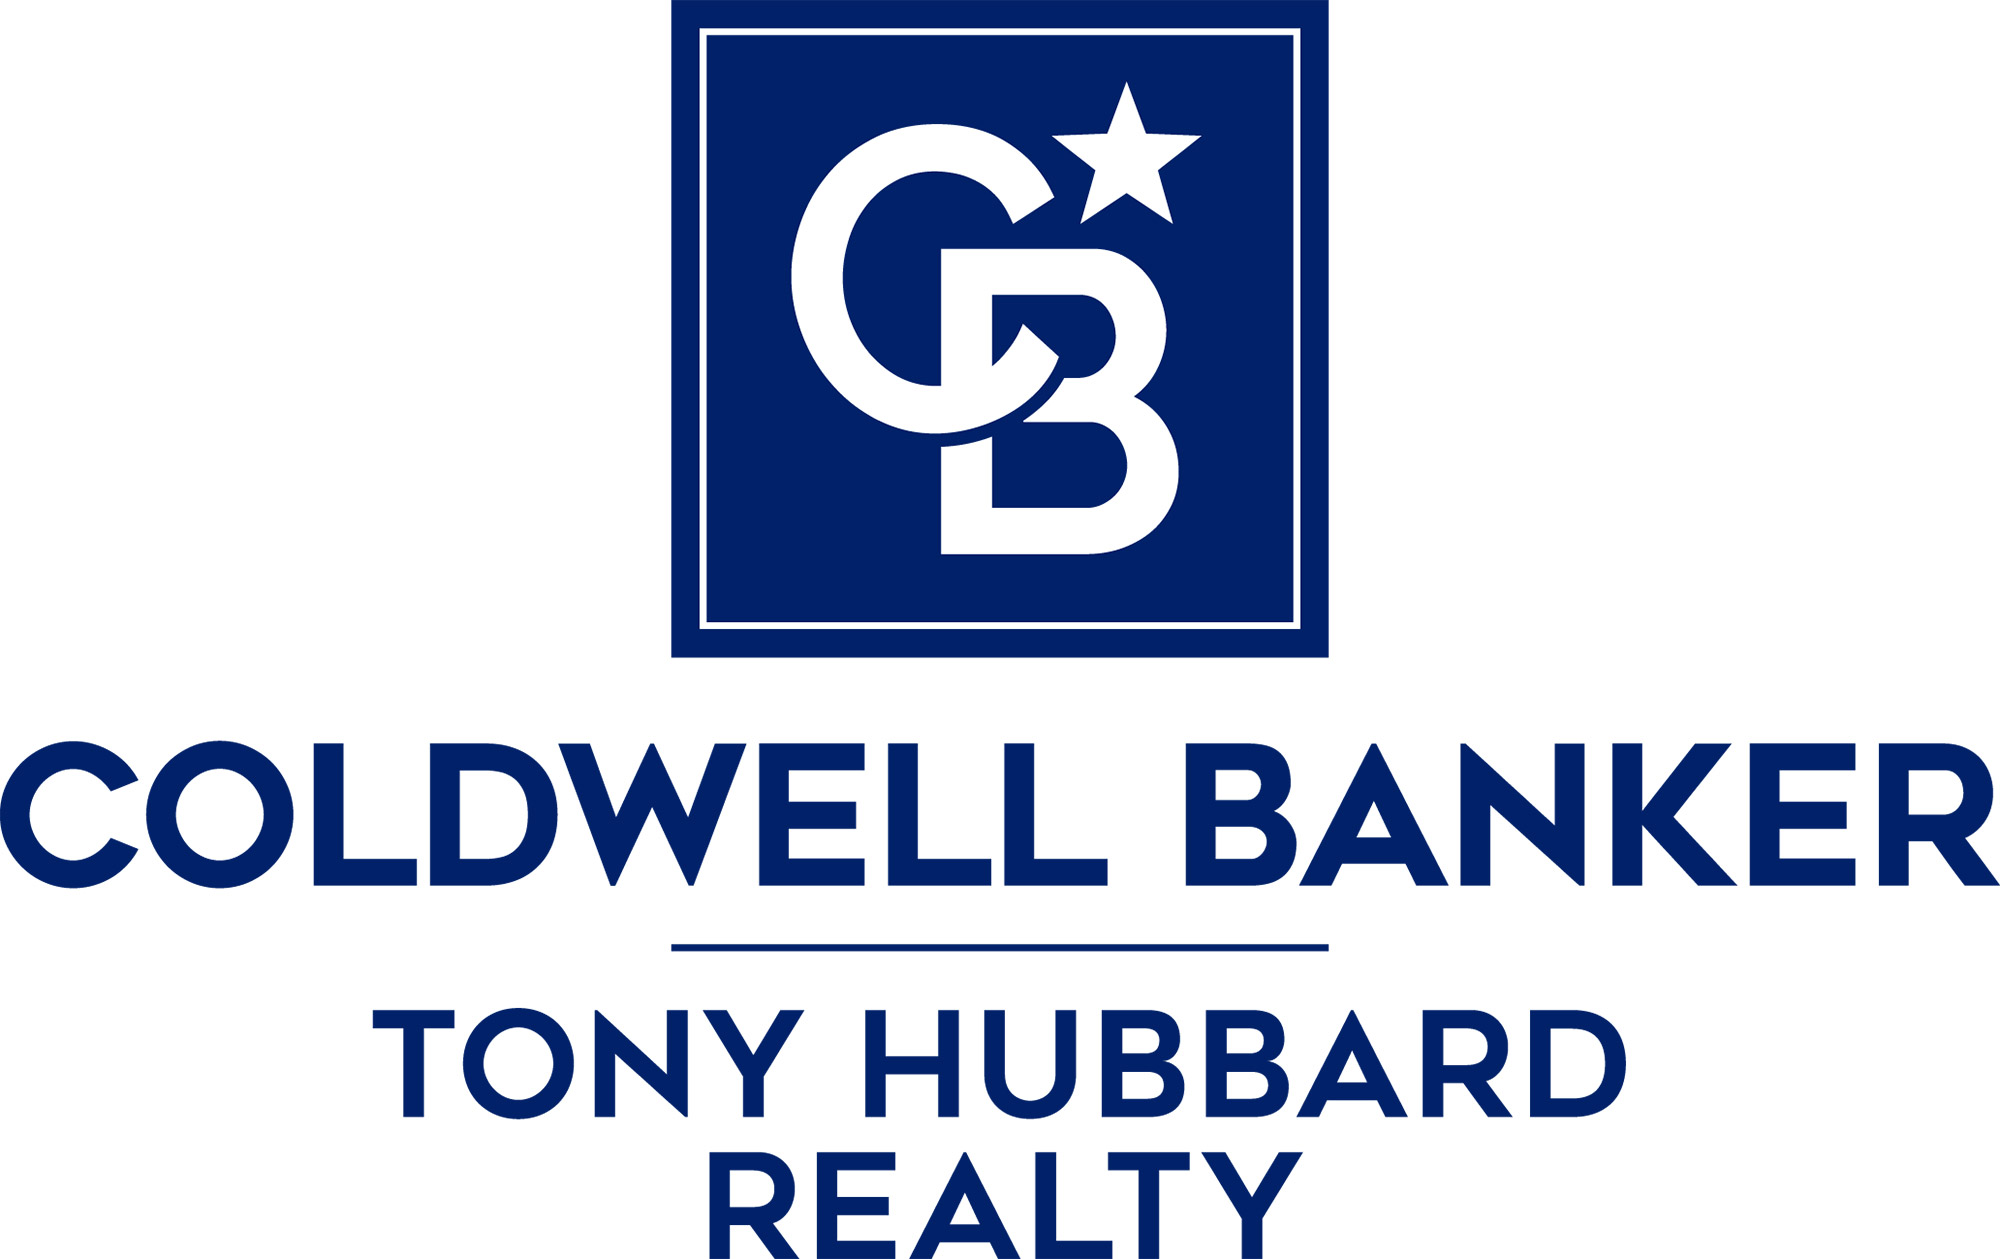 Richard Bisaillon - Coldwell Banker Tony Hubbard